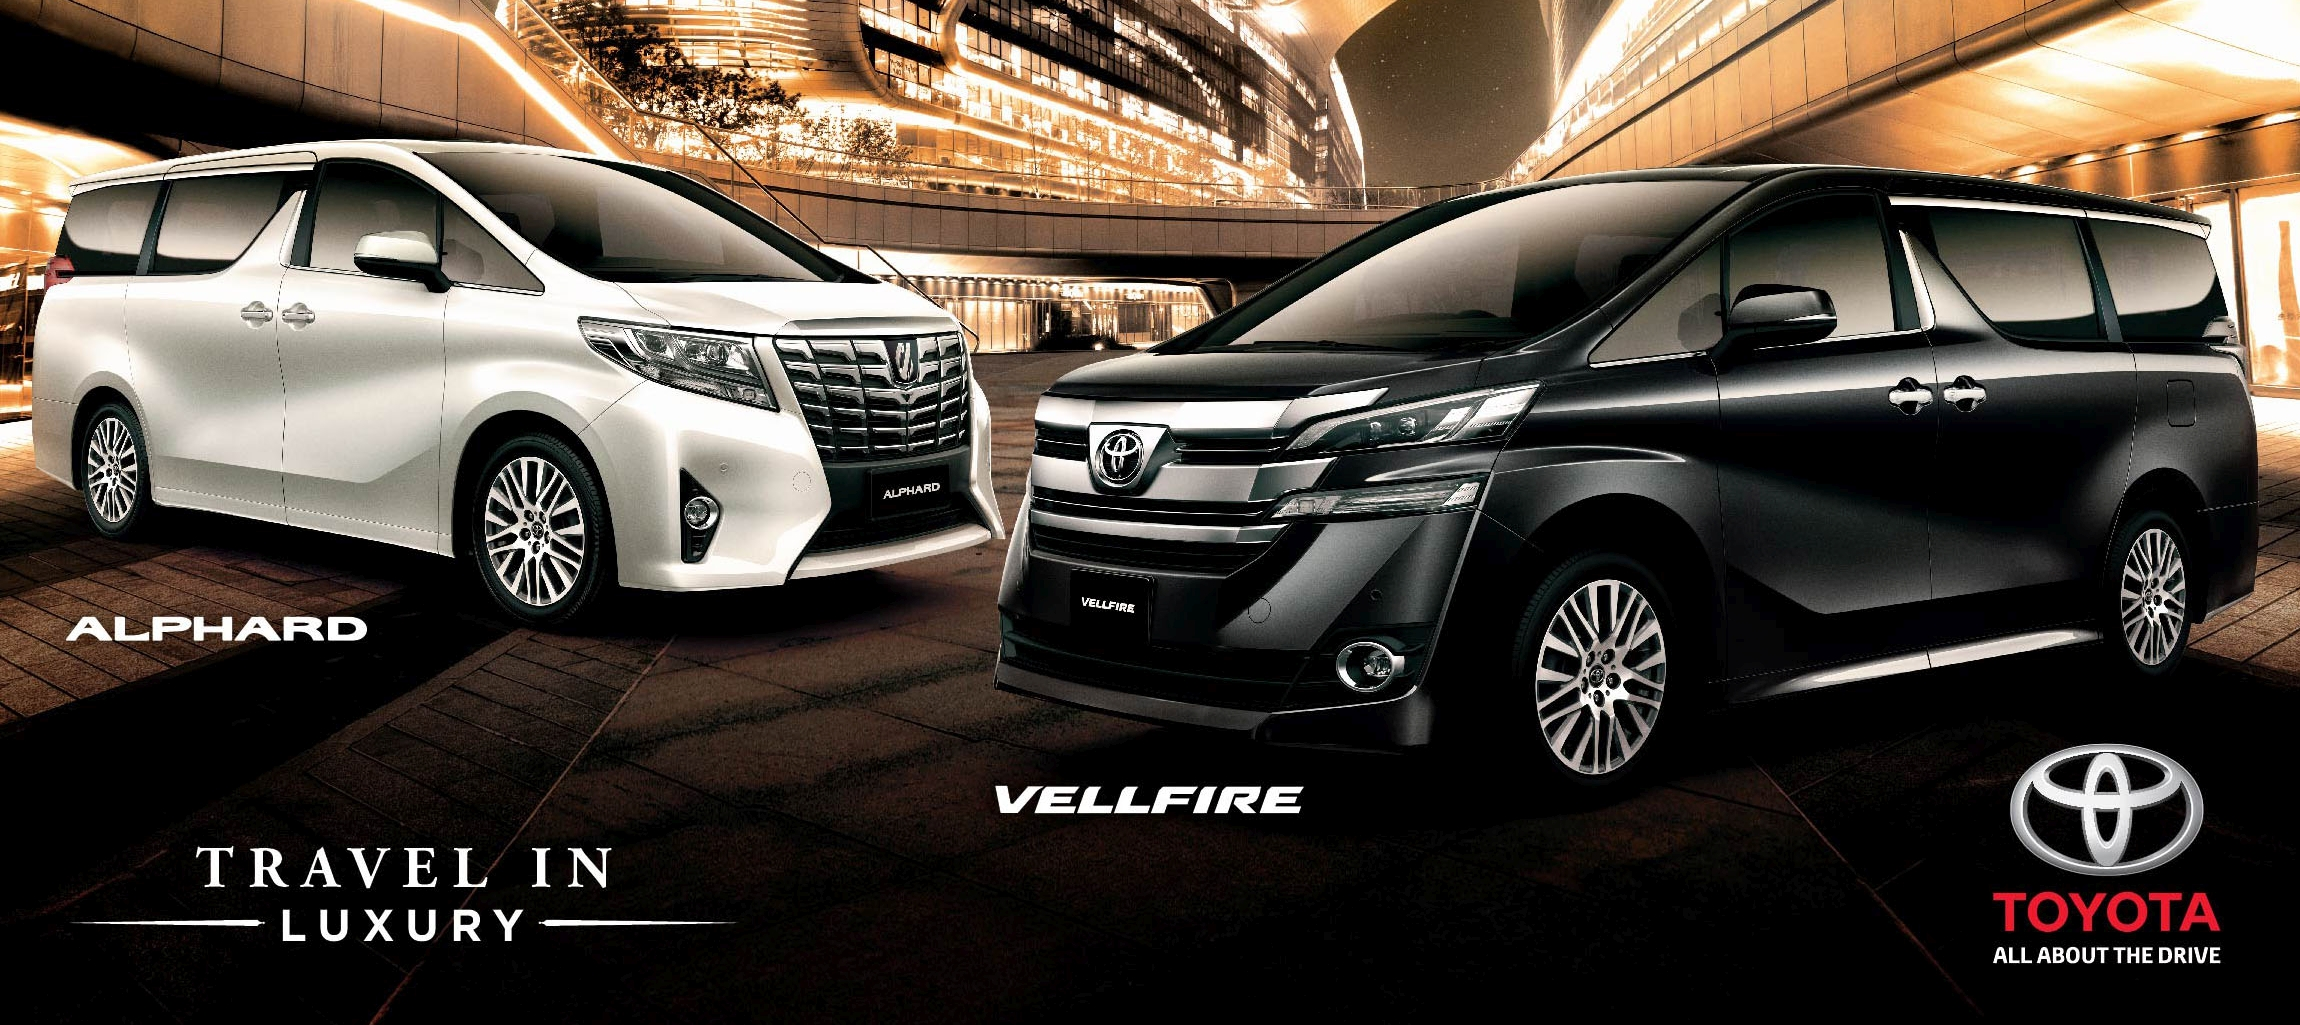 2016 Toyota Alphard And Vellfire Prices Revealed Rm420k